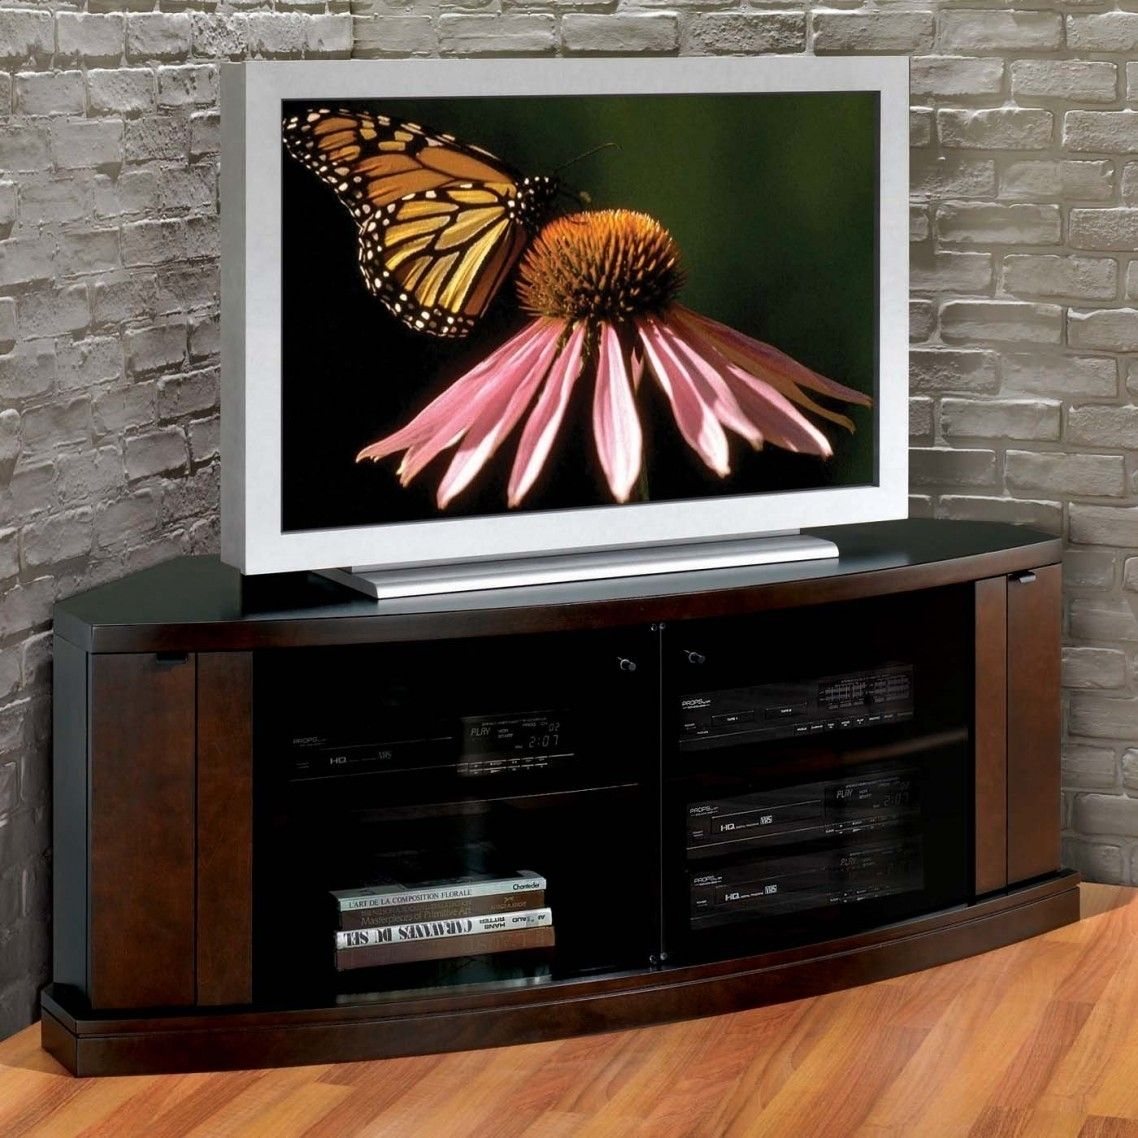 Dvd Player Cabinets With Glass Doors Httpbetdaffaires